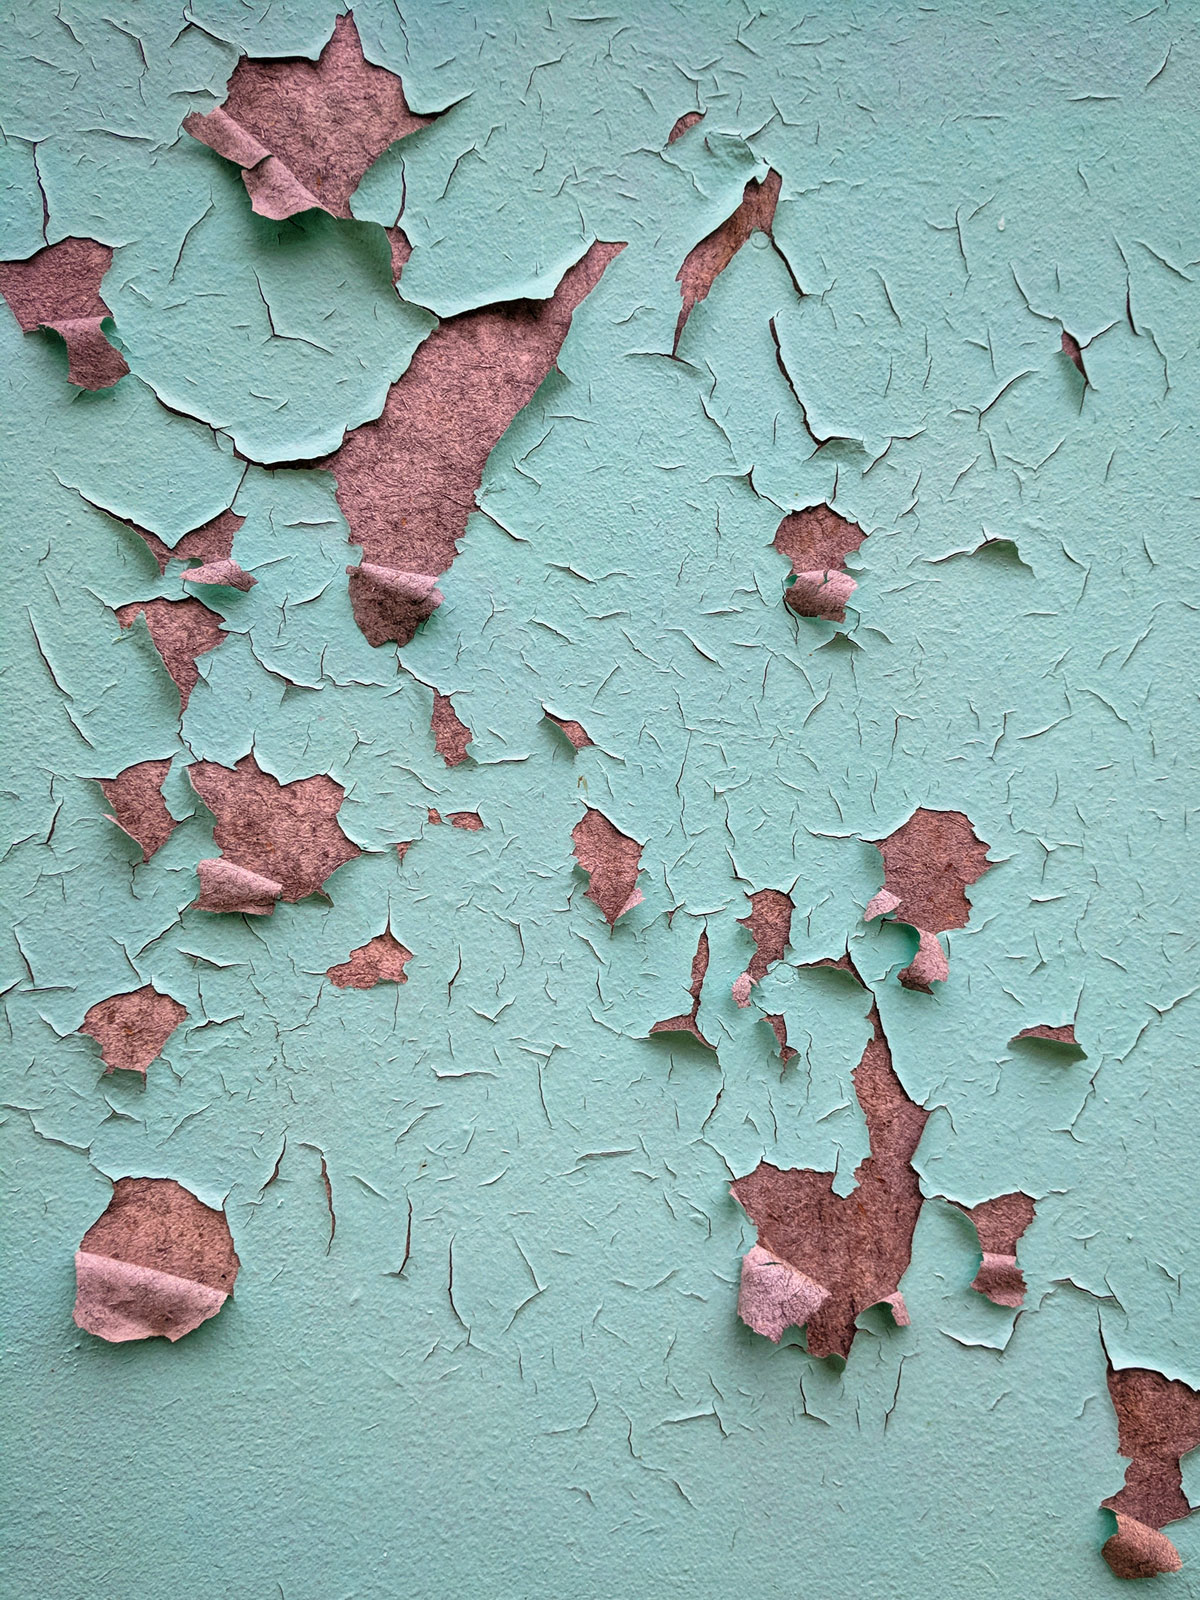 Peeling Paint by Courtney Celley